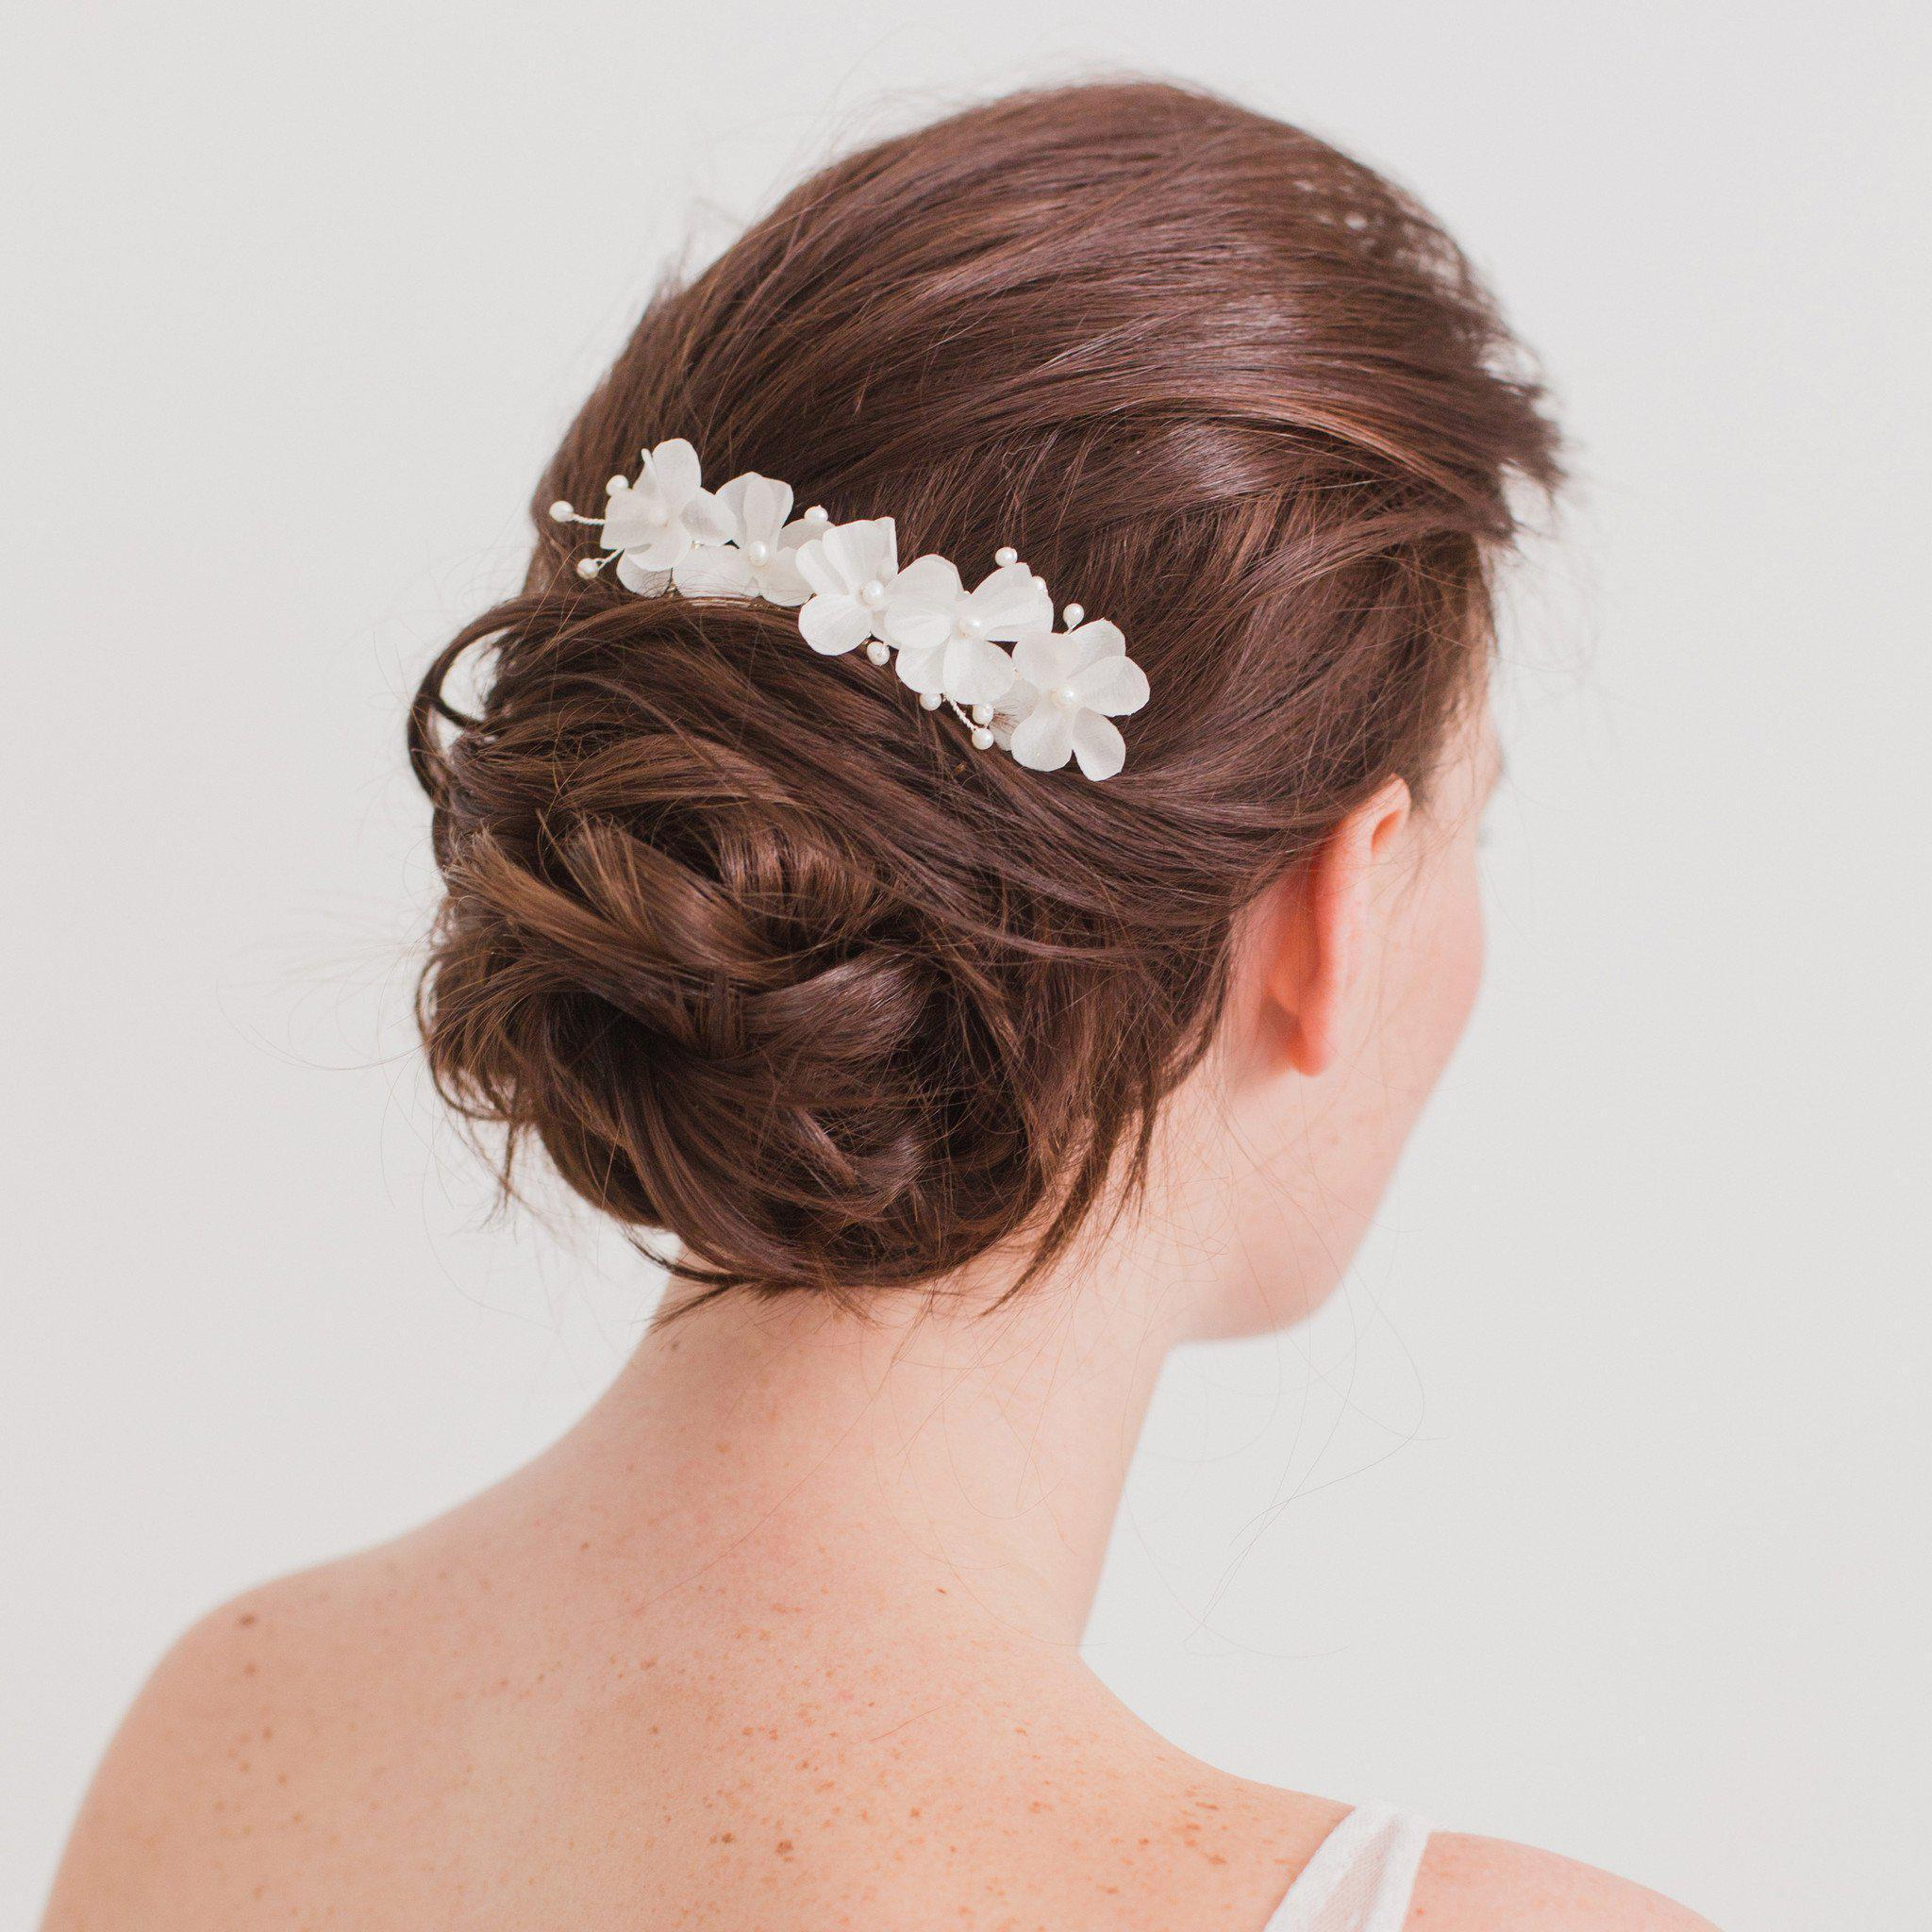 Silk flower comb for a bride